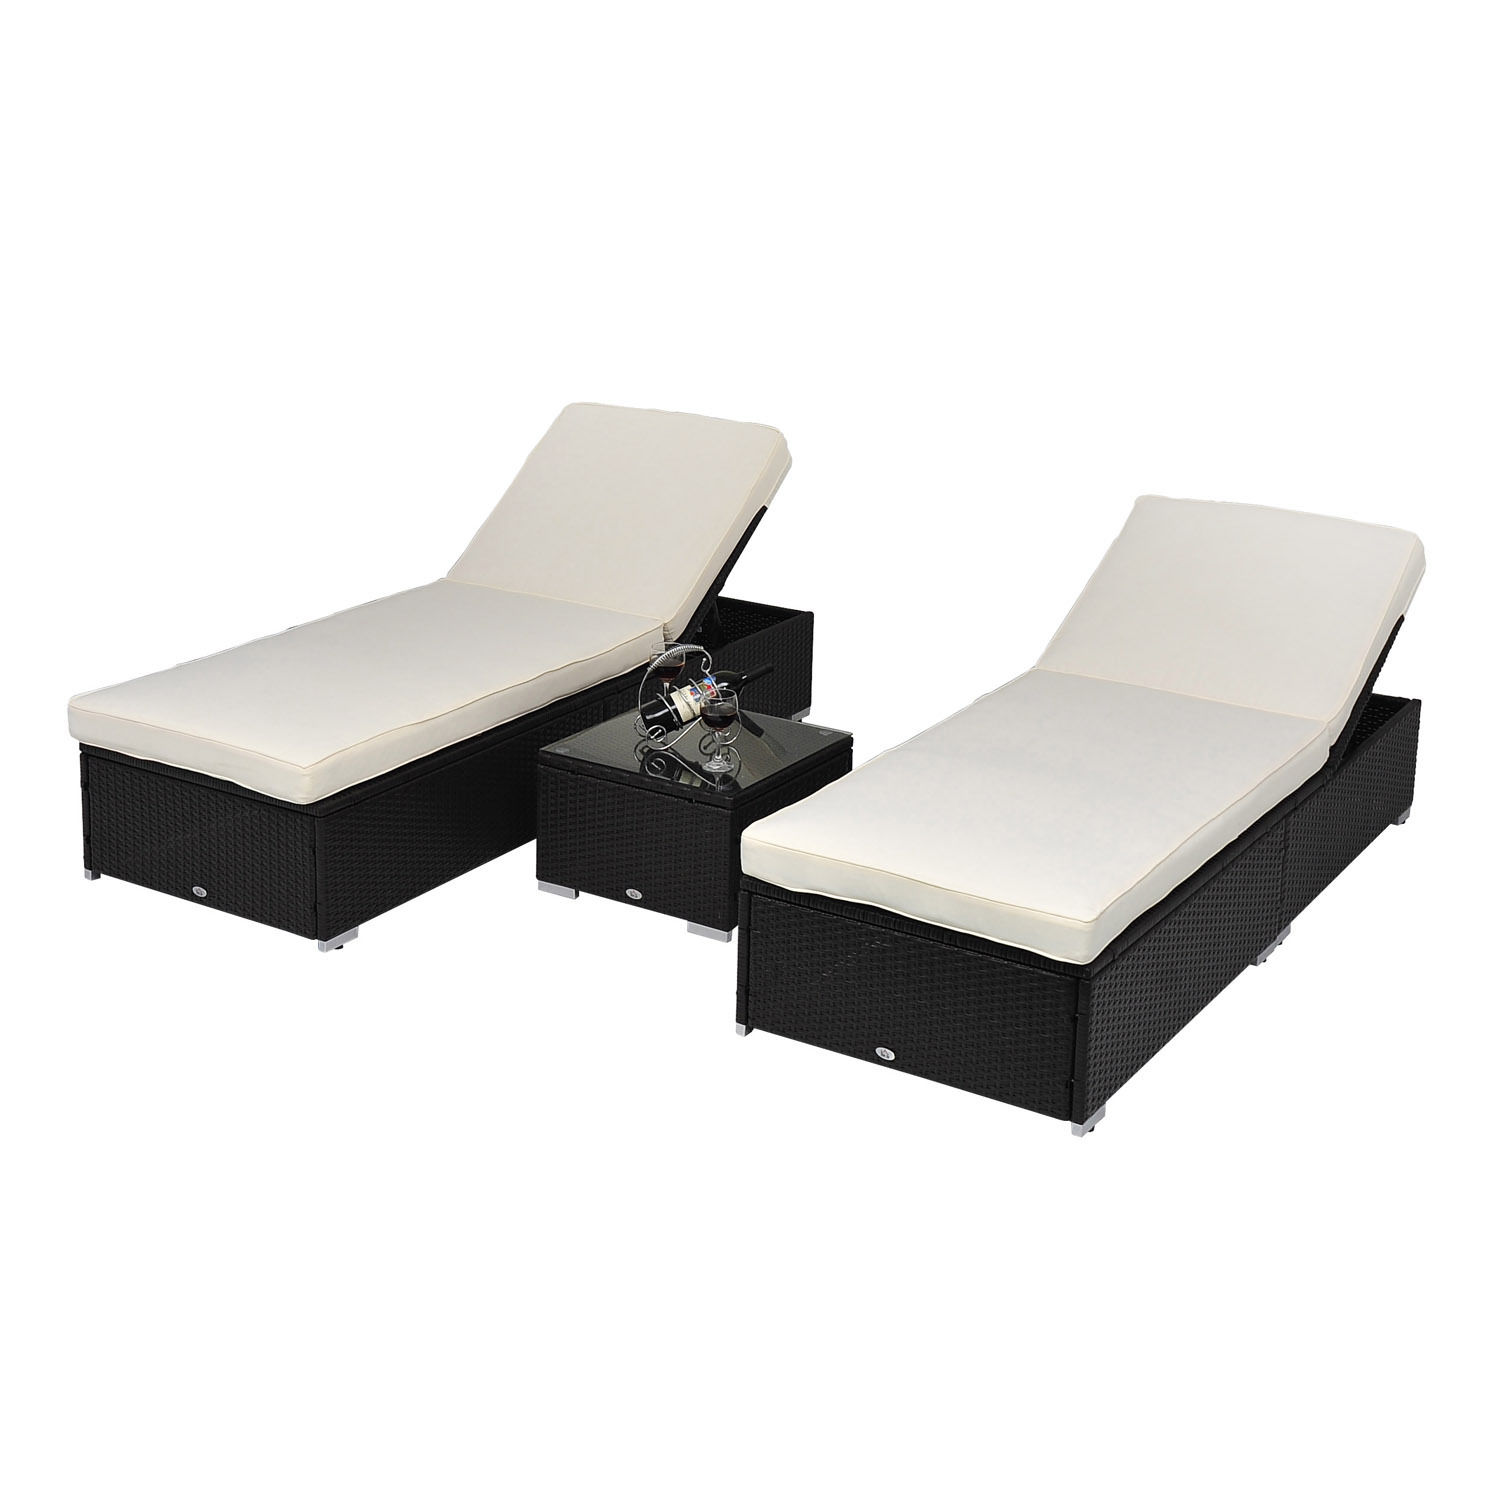 Outsunny 3 Piece Rattan Wicker Outdoor Patio Chaise Lounge Chair Set W/  Side Table